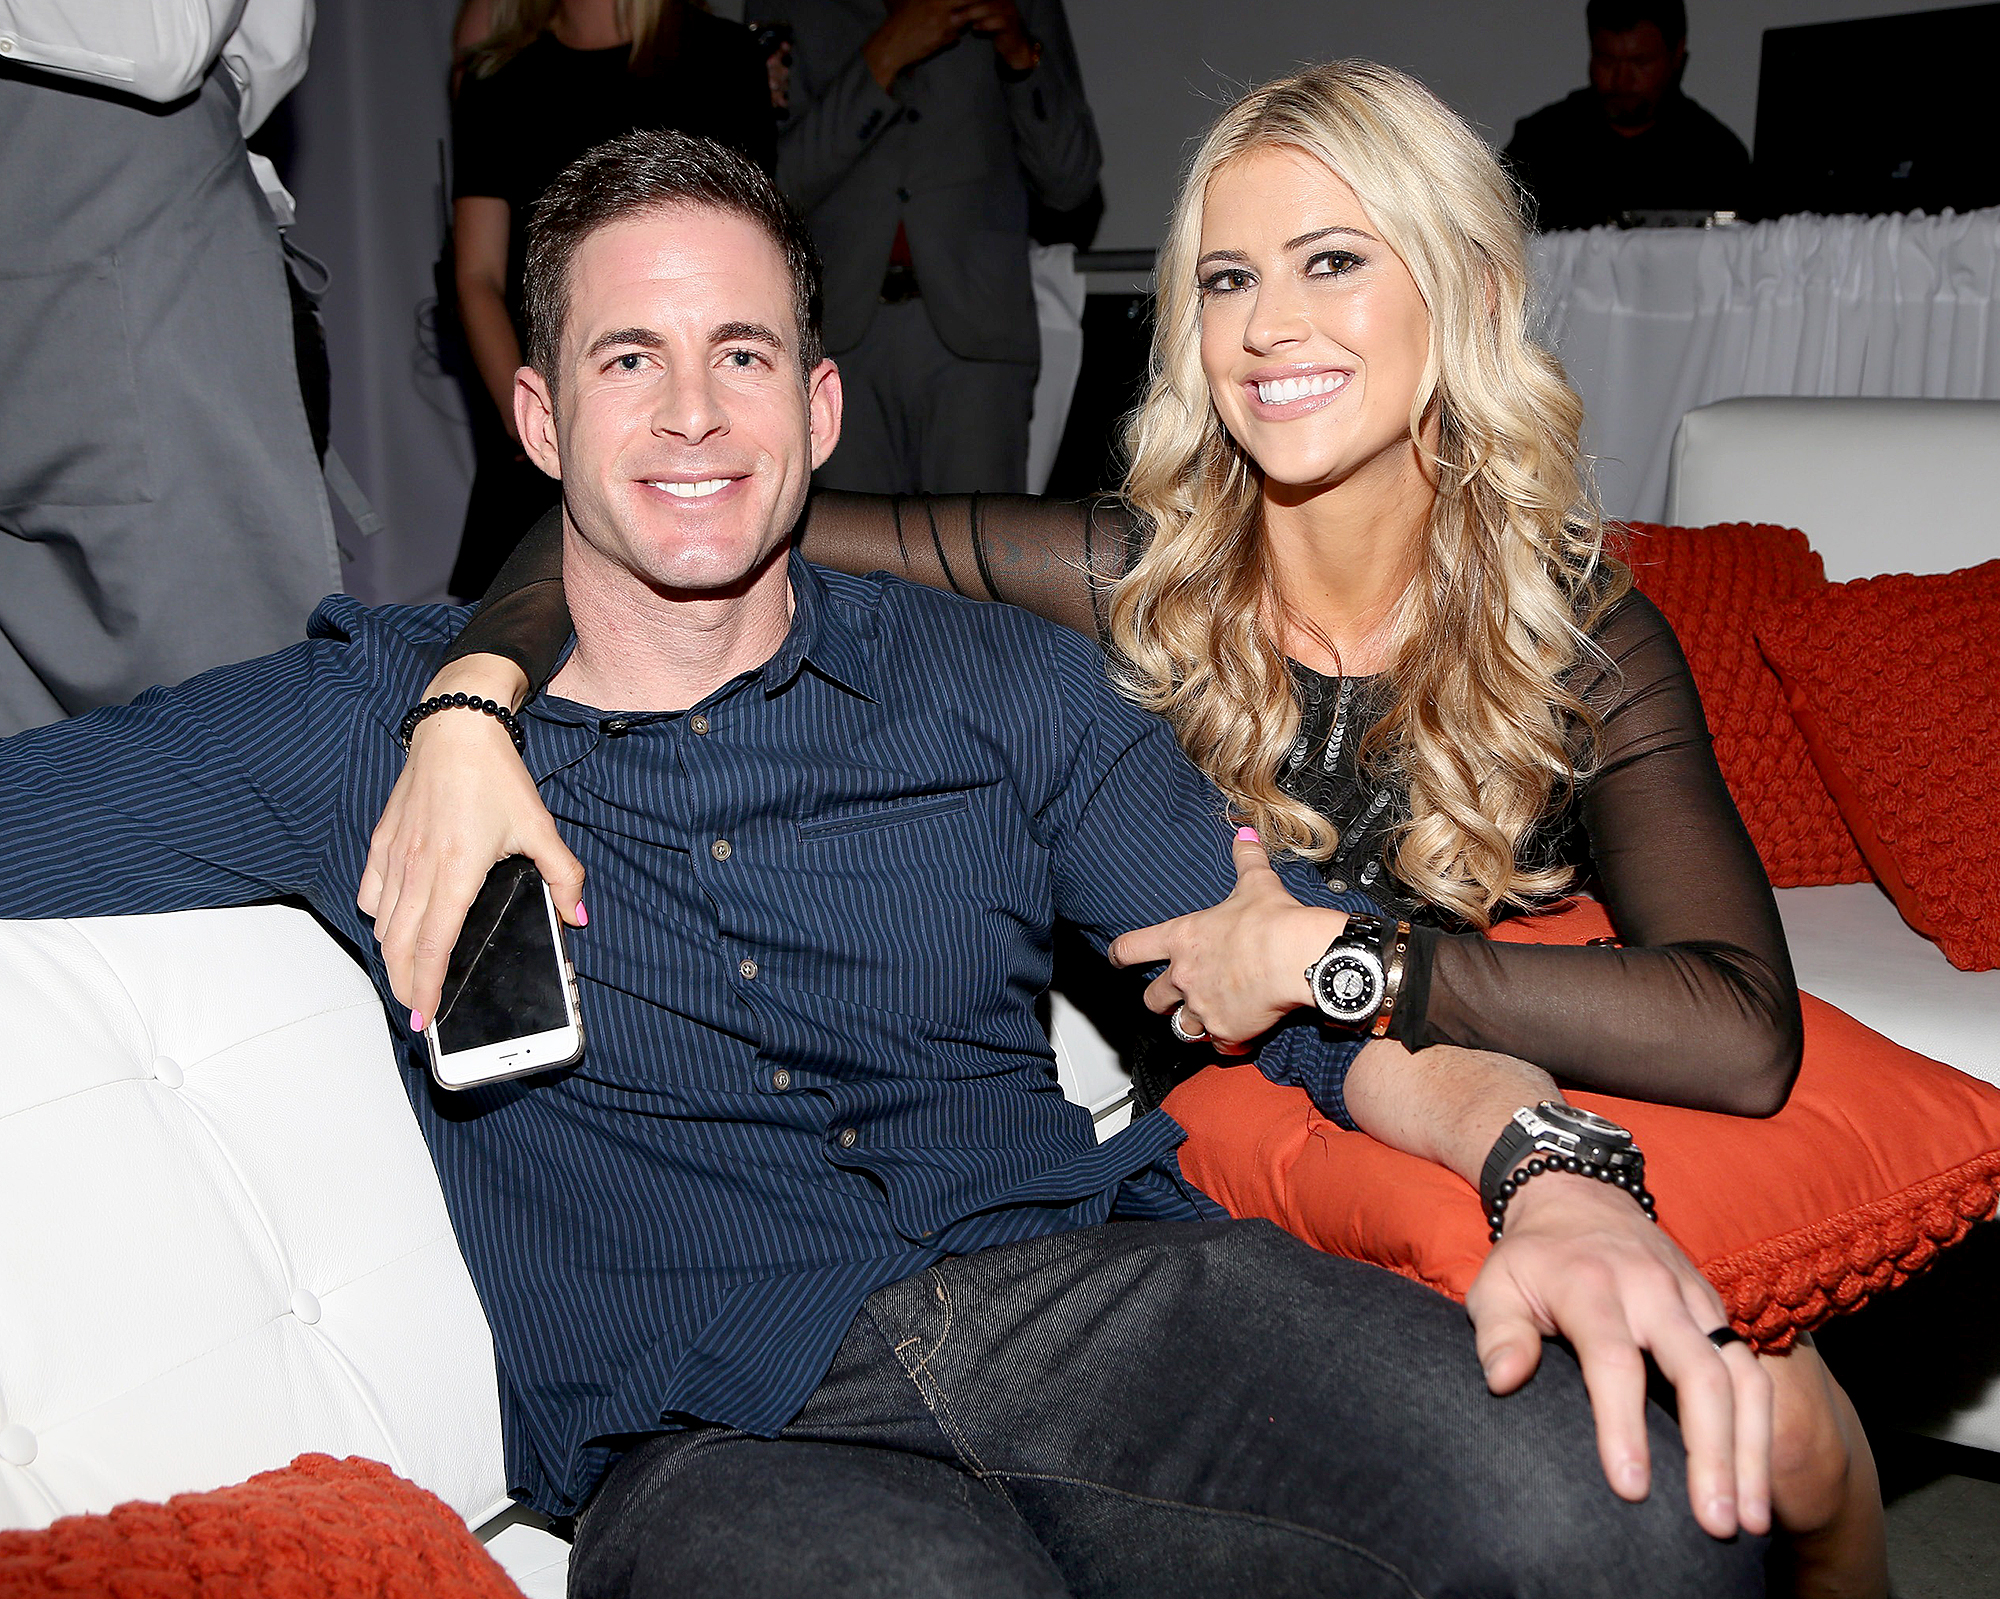 Tarek-El-Moussa-Christina-Anstead-Setting-Him-Up-on-a-Date